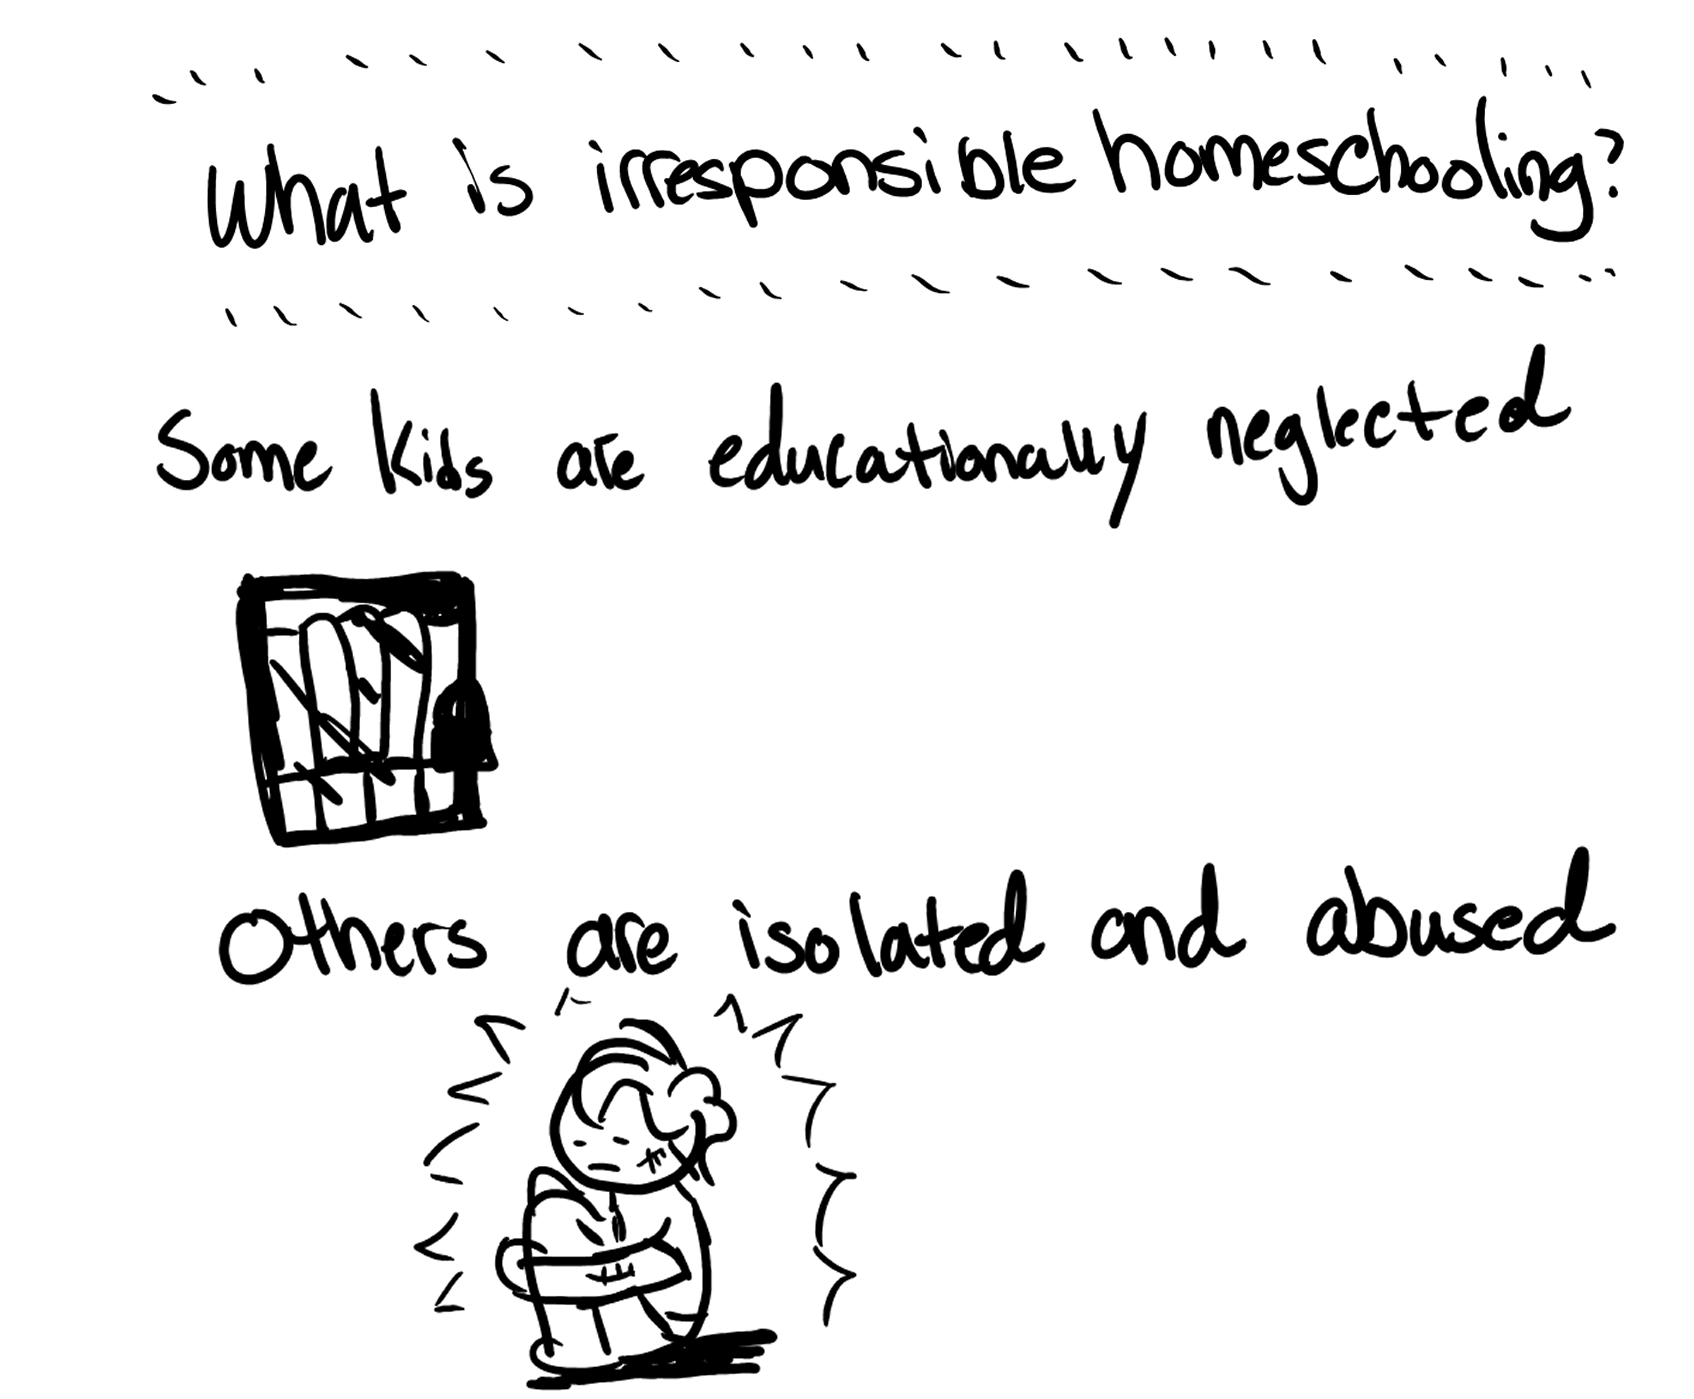 What is irresponsible homeschooling? Some kids are educationally neglected, others are isolated and abused.